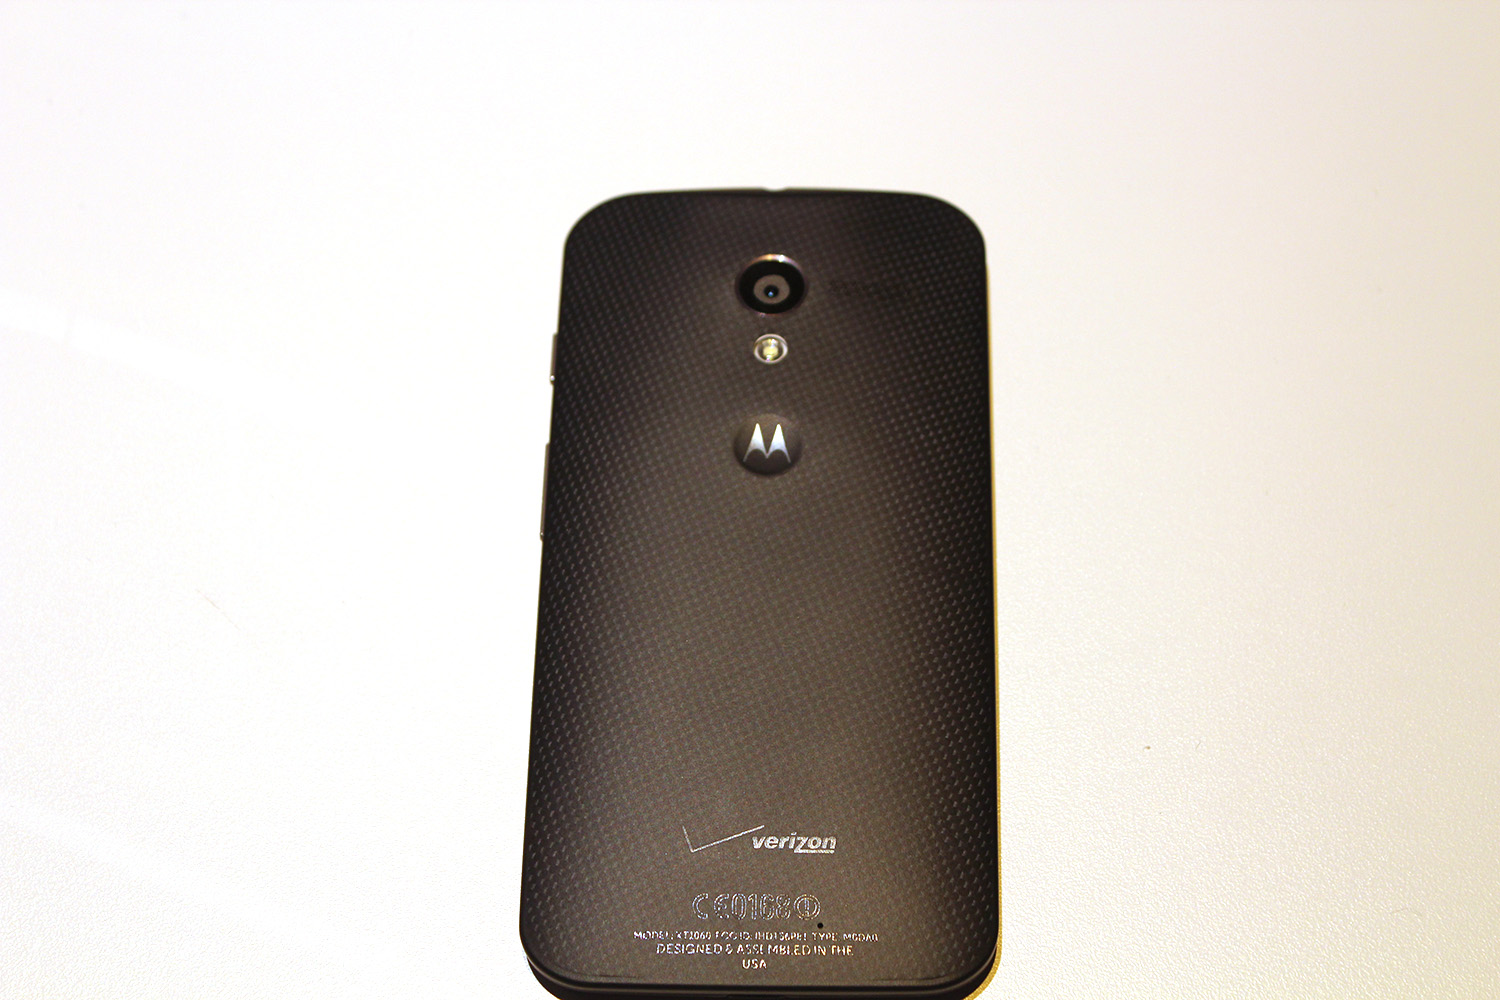 IMG 3079 Hands on with the Moto X: You wont lust after it, but its a solid smartphone